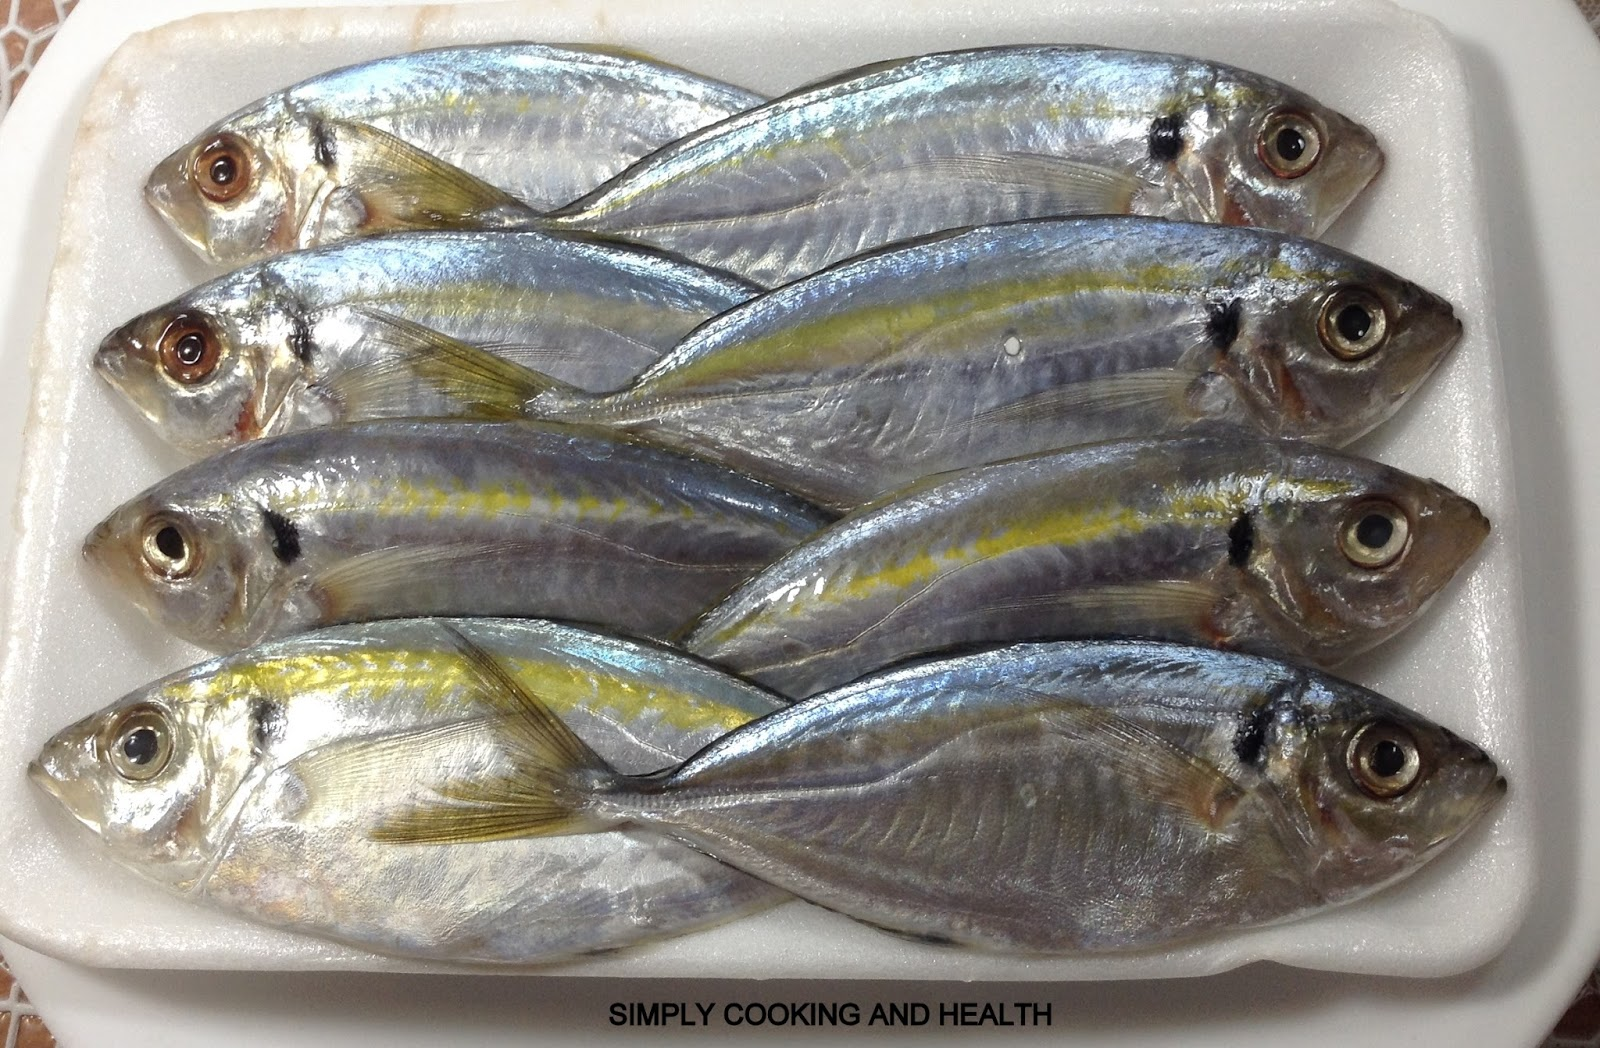 Trevally Varieties Grey Giant Hitam Xl Simply Cooking And Health Small Fish Fry 1600x1048